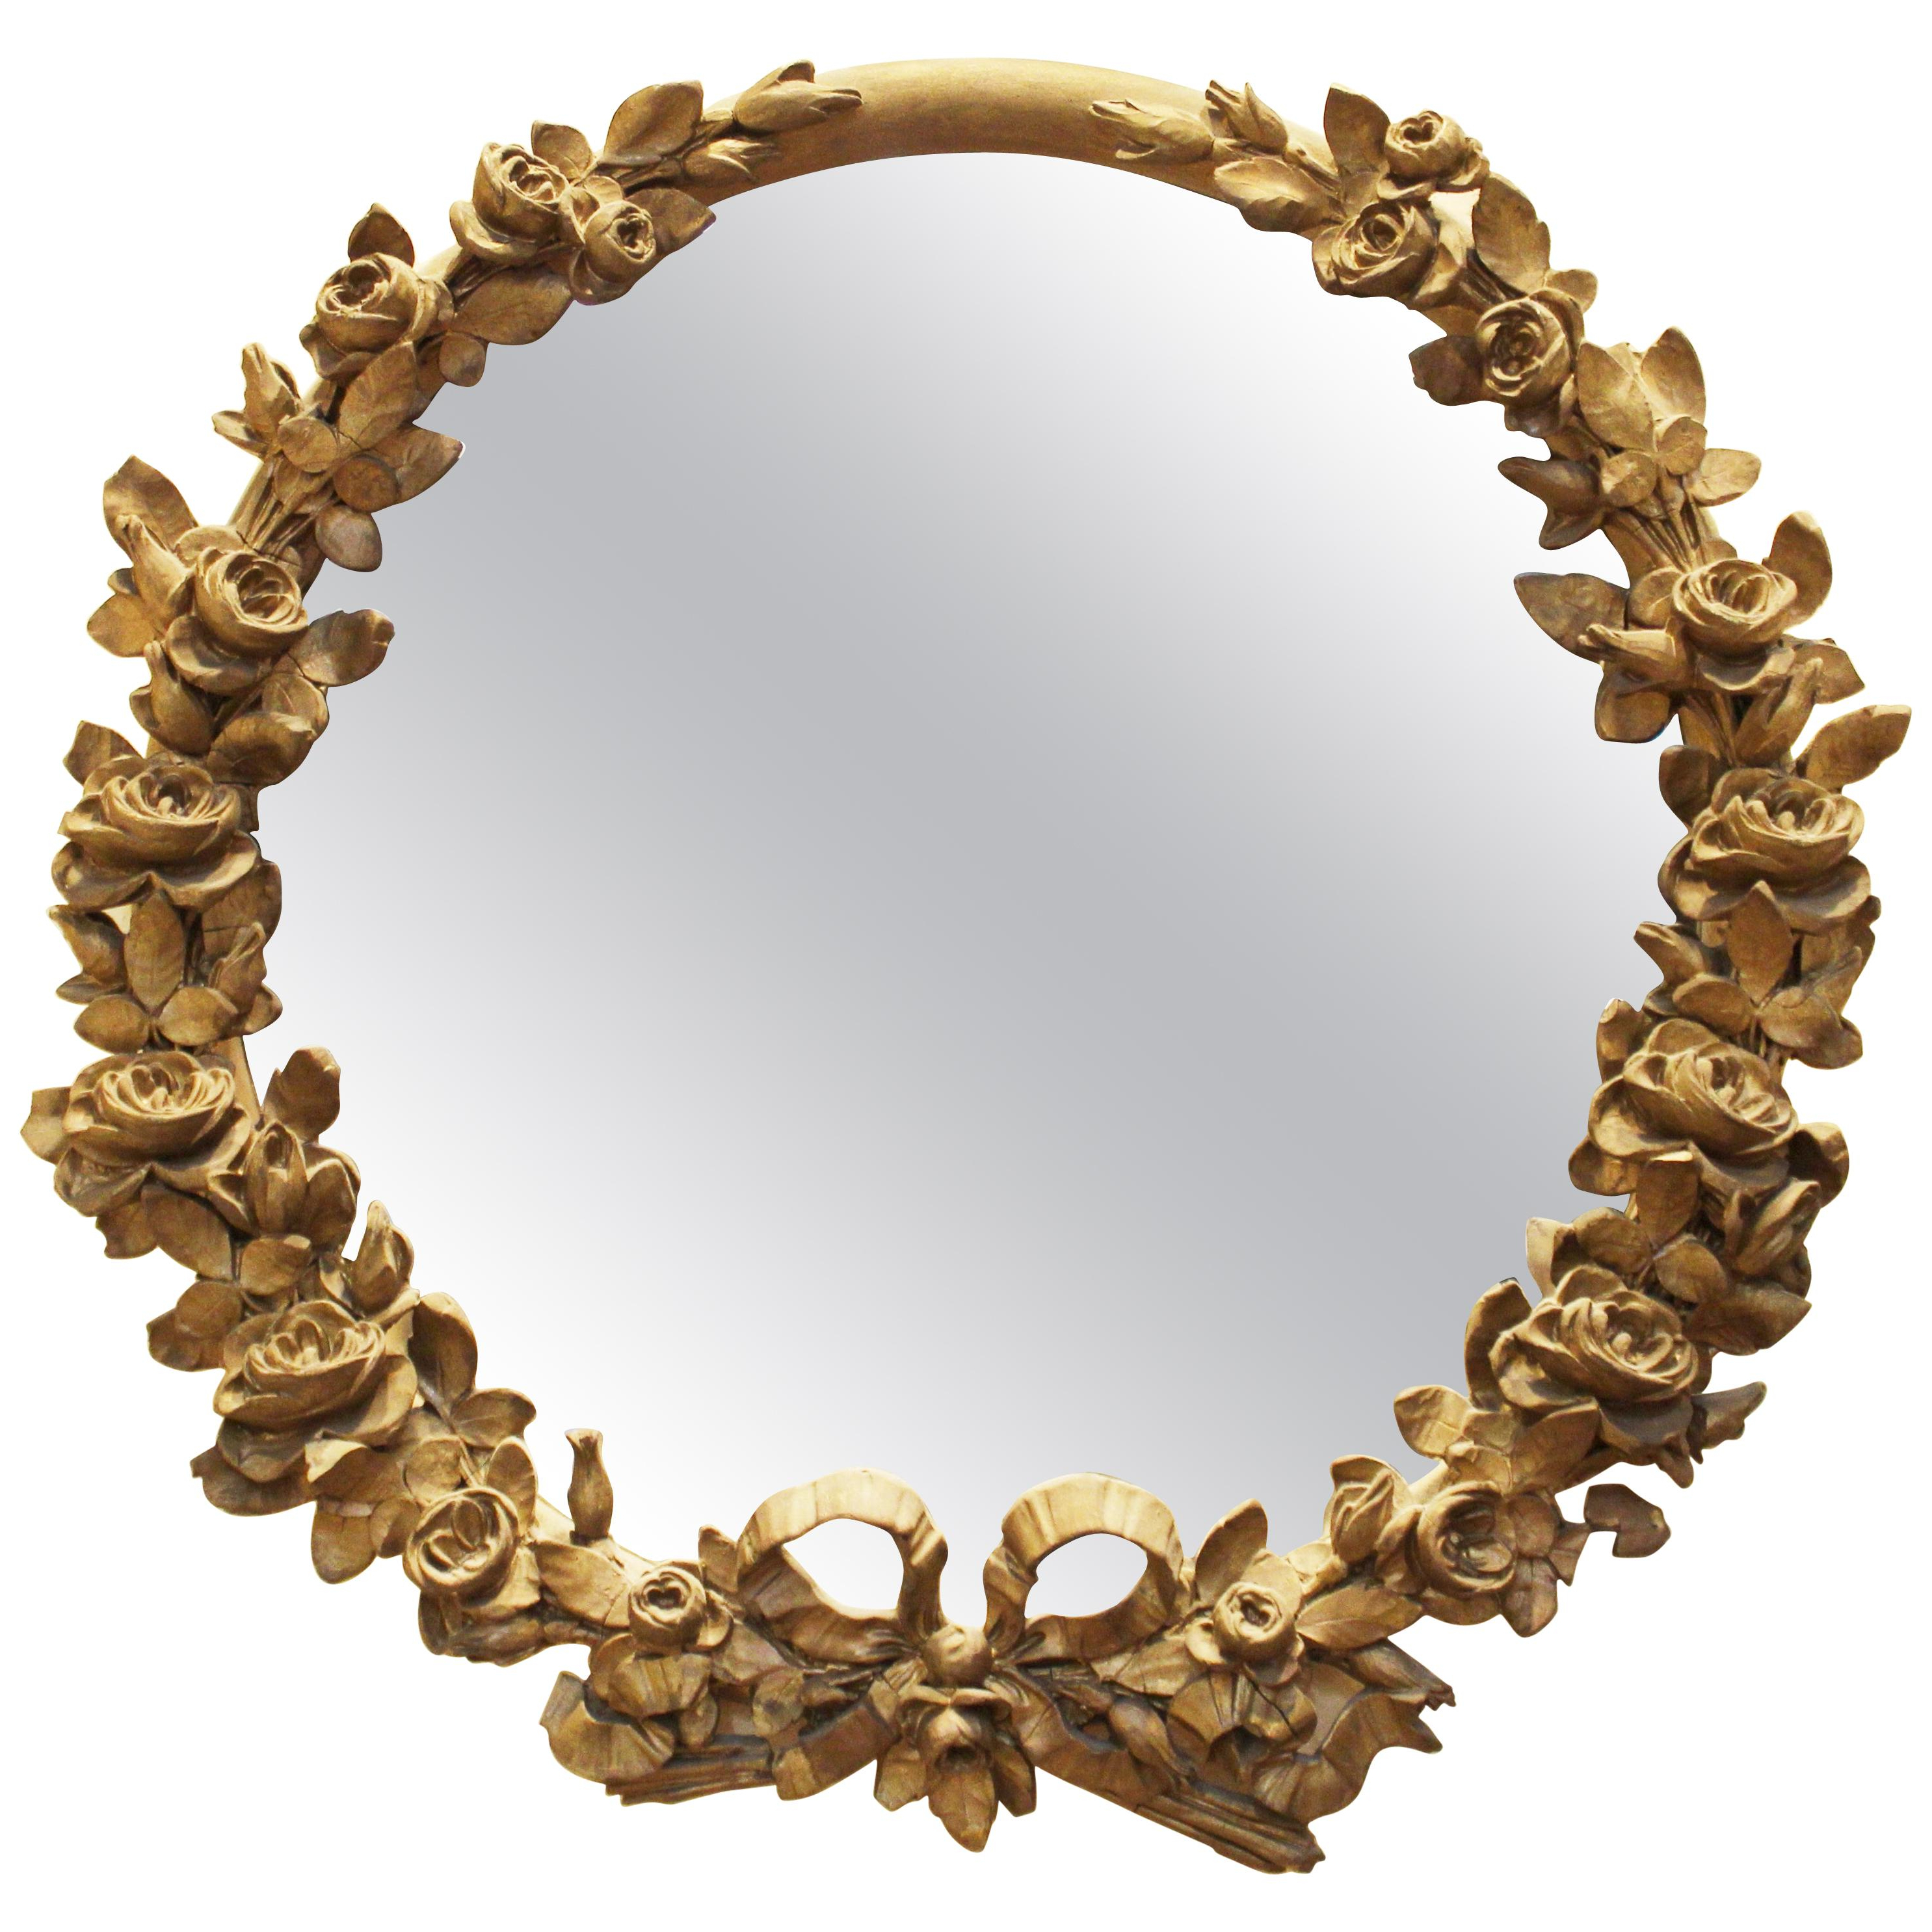 Preferred Vertical Round Wall Mirrors For Antique And Vintage Wall Mirrors – 13,029 For Sale At 1stdibs (View 15 of 20)